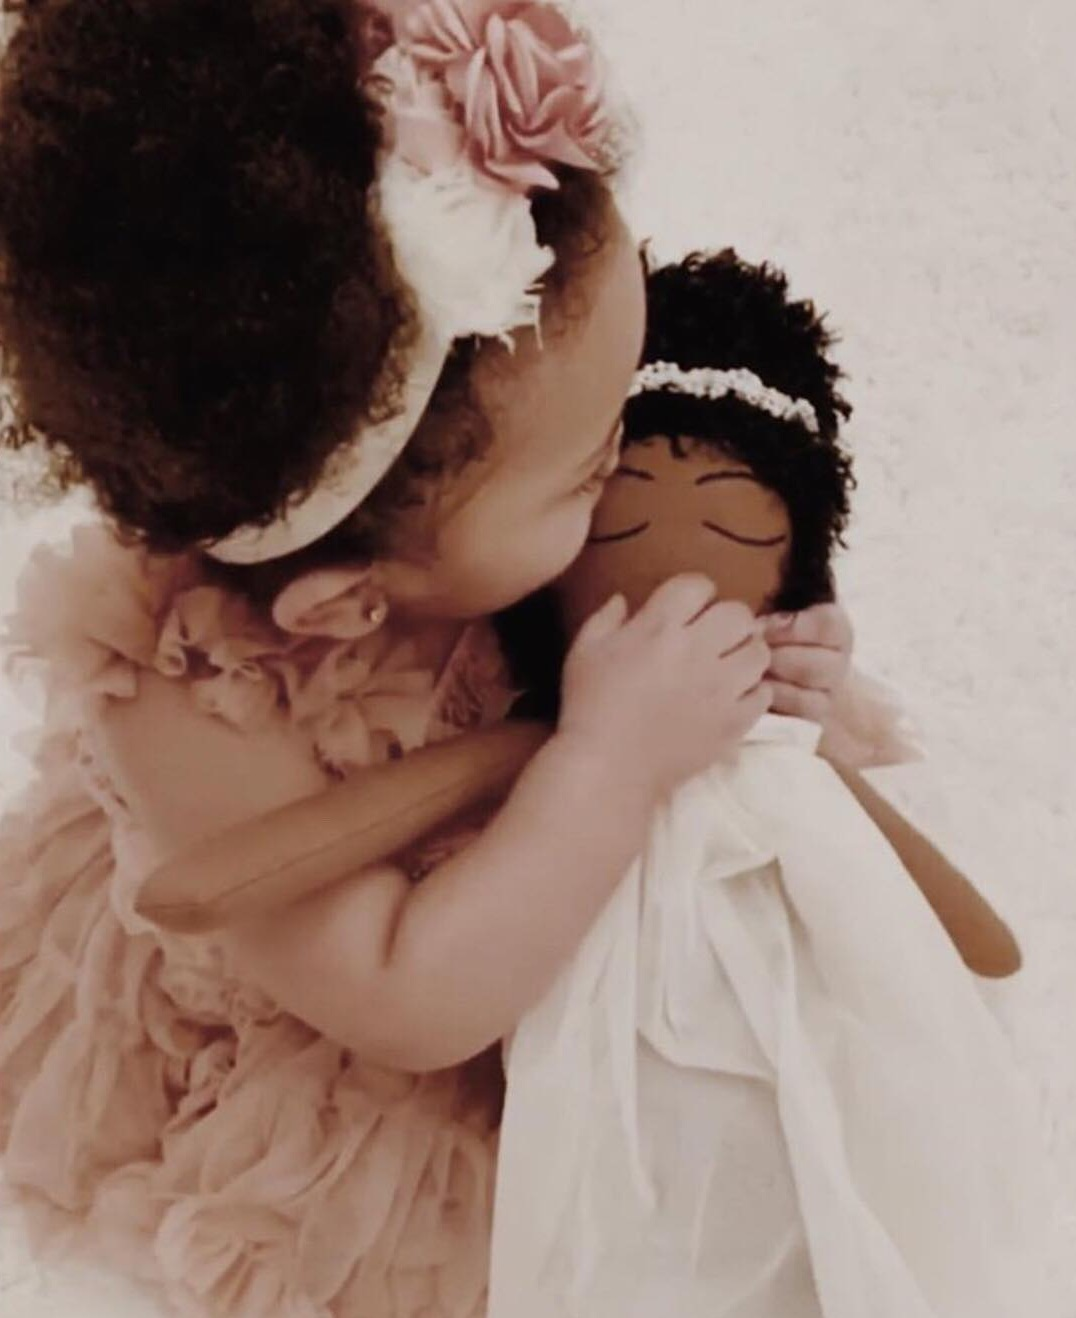 REPRESENTATION MATTERS: WHERE TO SHOP BLACK DOLLS - Shopping